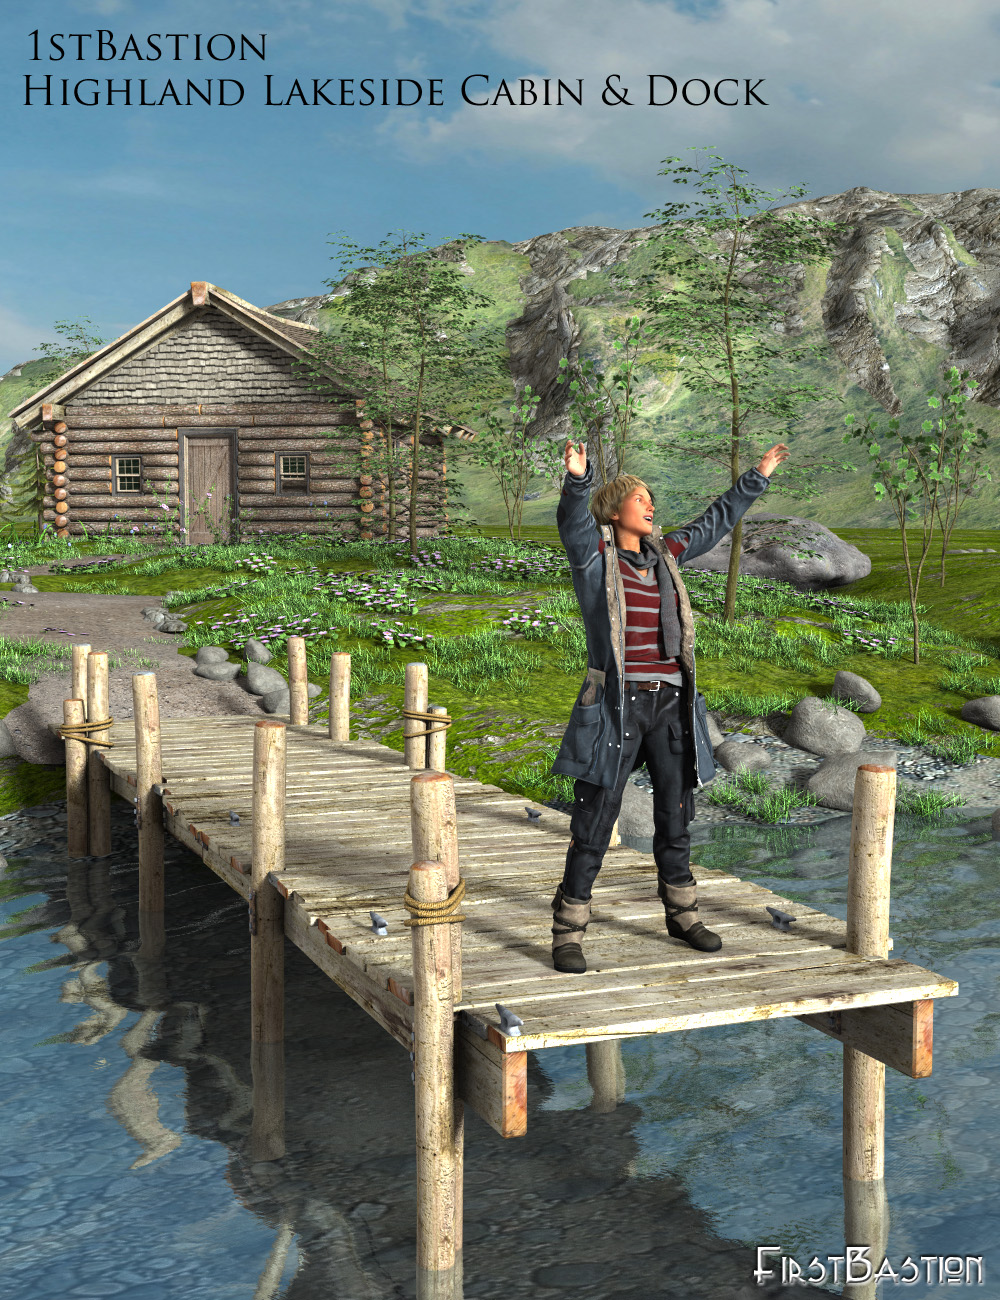 1stBastions Highland Lakeside Cabin and Dock by: FirstBastion, 3D Models by Daz 3D